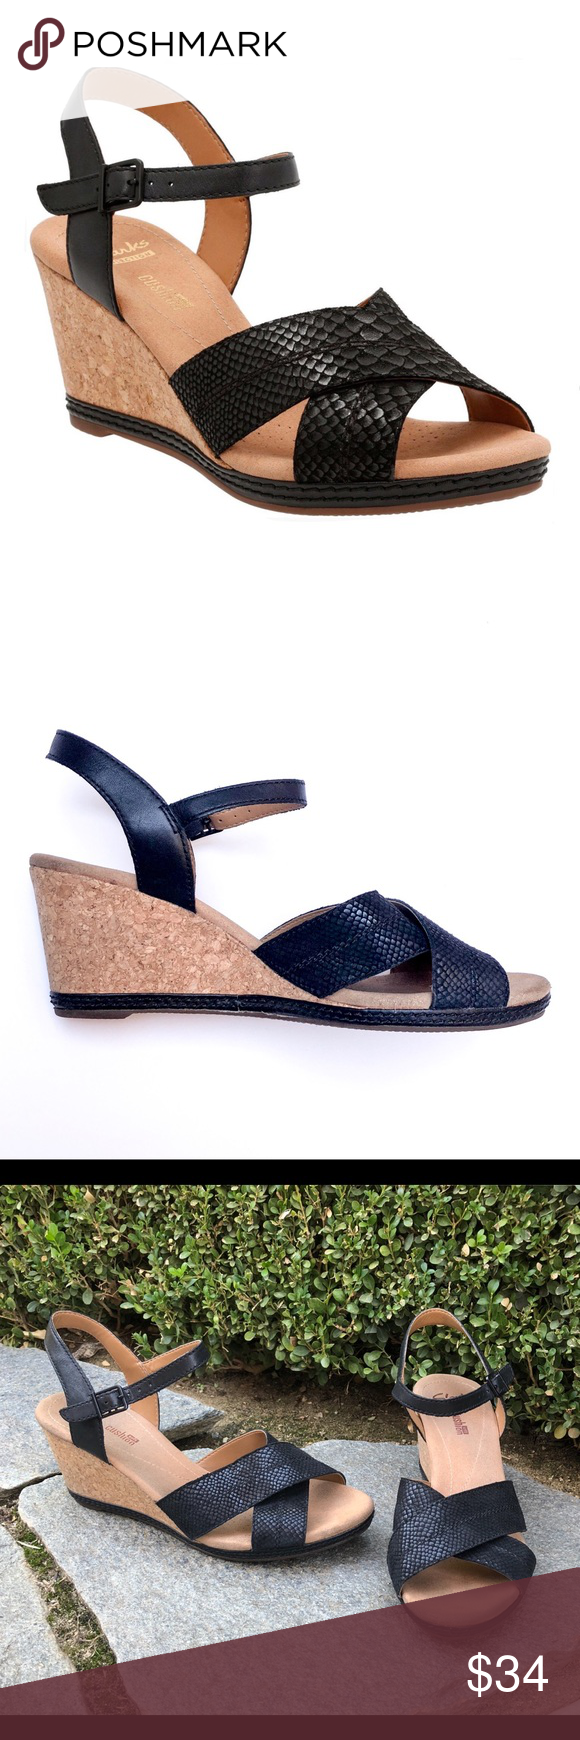 "c873ae61cec Clarks Black Helio Latitude Wedge Ankle Sandal 10 Clarks Soft Cushion Helio  Latitude Black Leather (Snake Texture) 3"" Cork Wedge Heel Adjustable Ankle  strap ..."